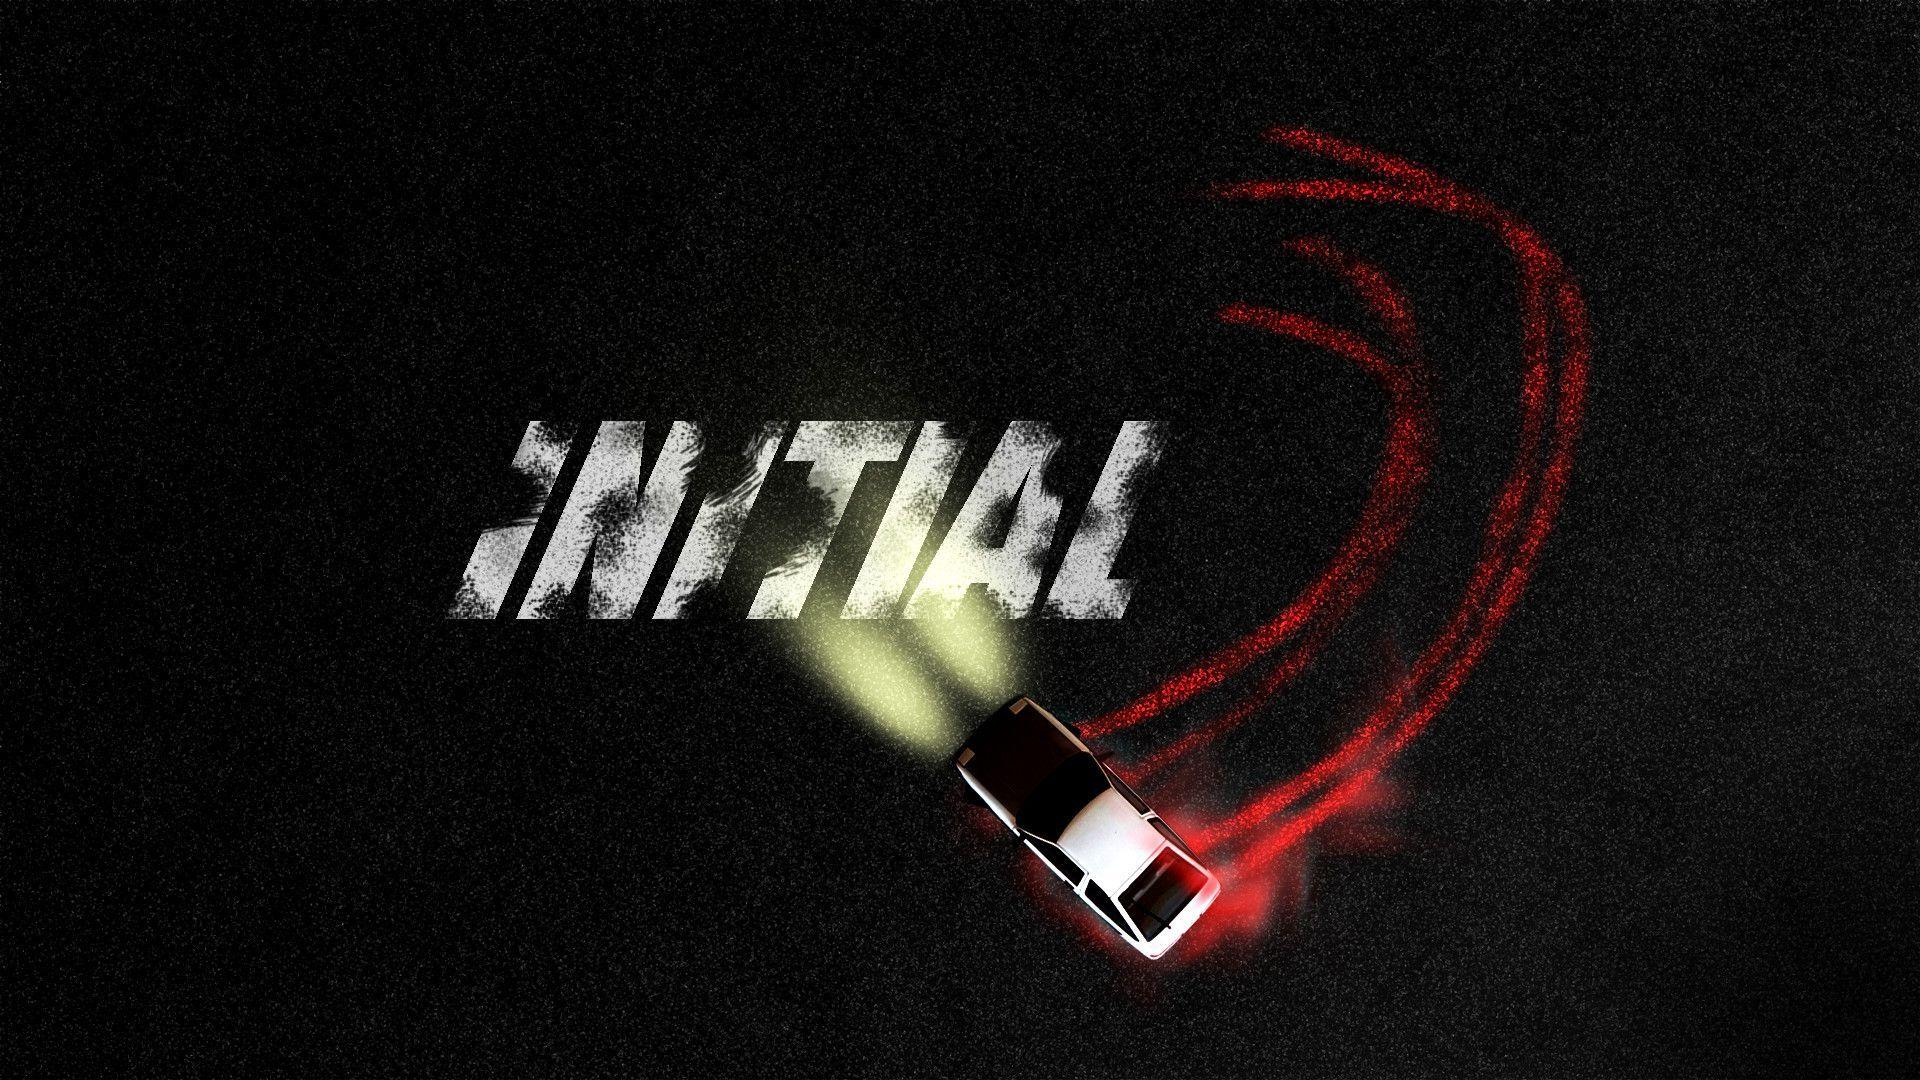 initial d wallpapers download